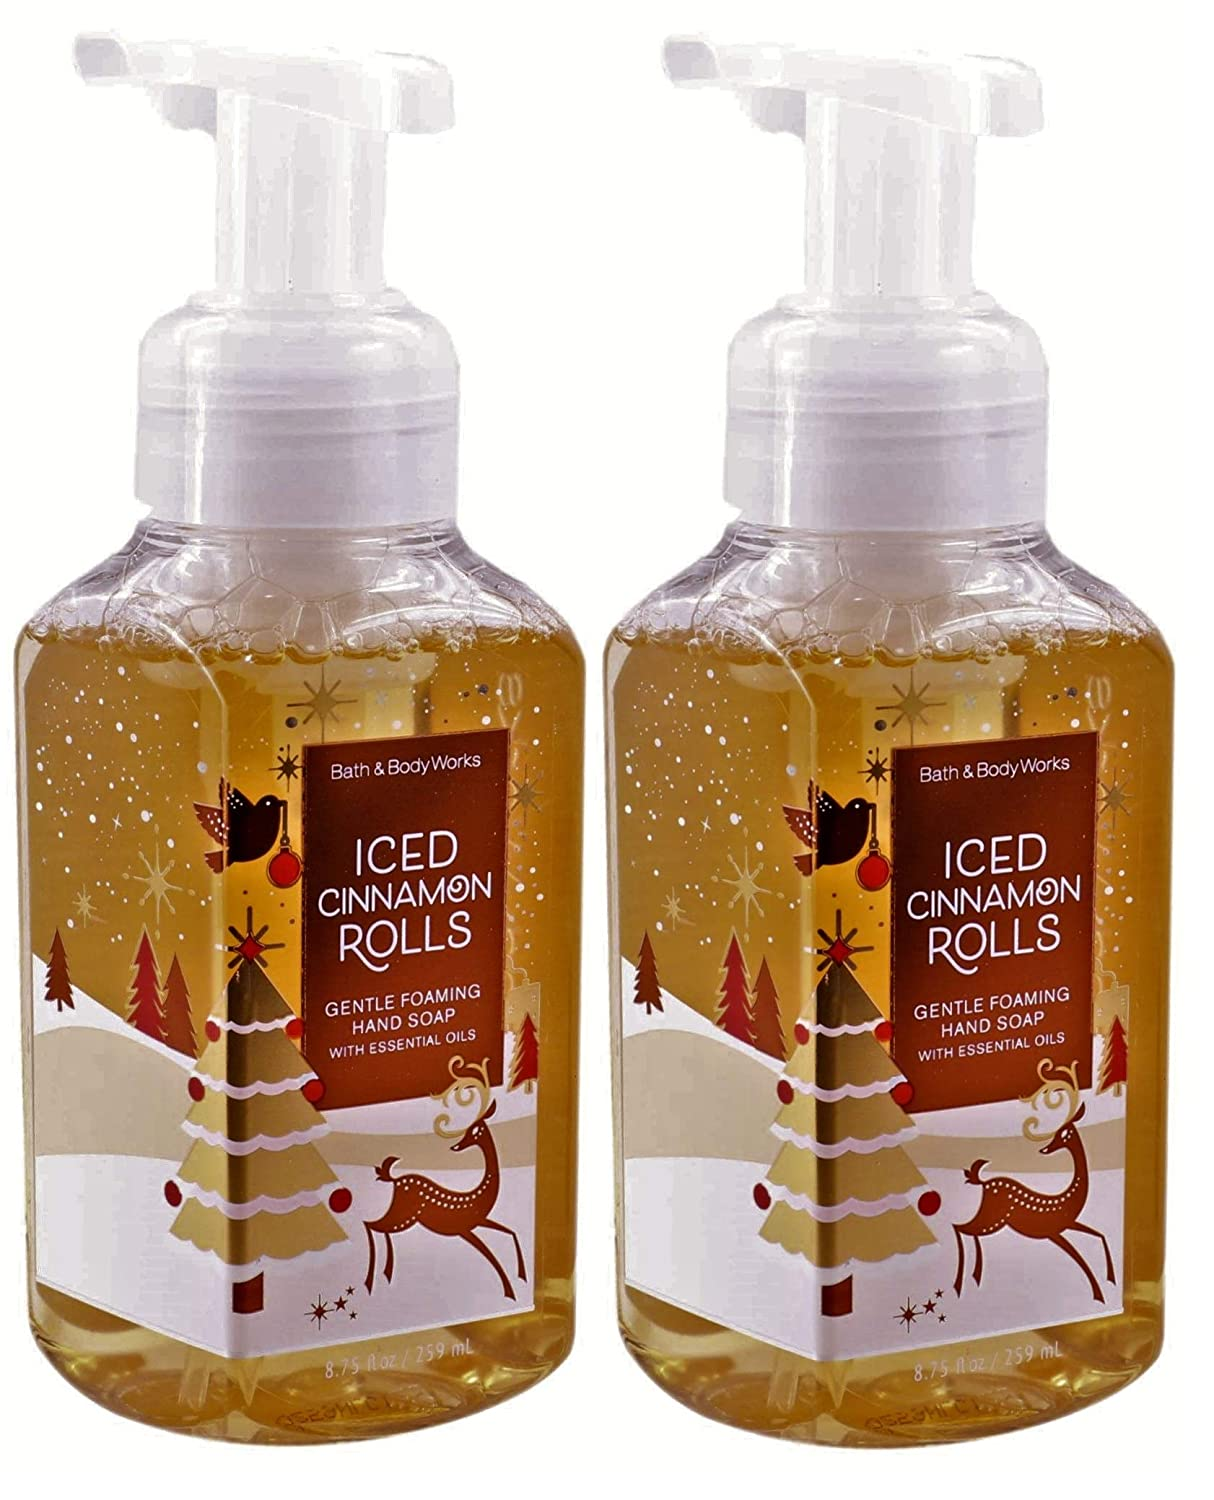 White Barn Bath and Body Works Iced Cinnamon Rolls 8.75 ounce (2 Pack) Gentle Foaming Hand Soap